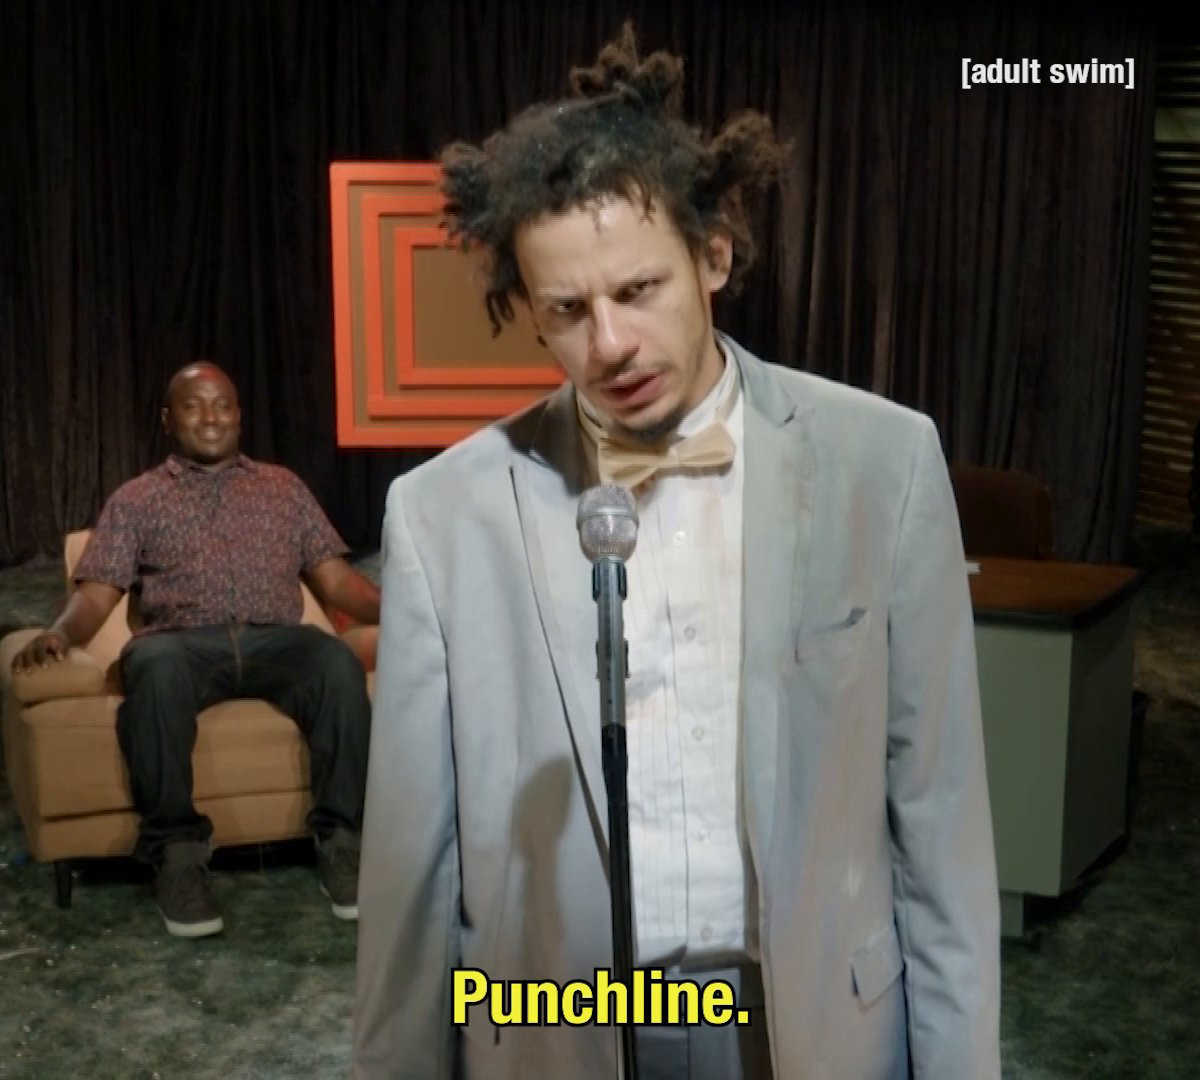 Eric Andre drops by Development Meeting to share his comedy wisdom tonight at 9pm ET on adultswim.com/streams